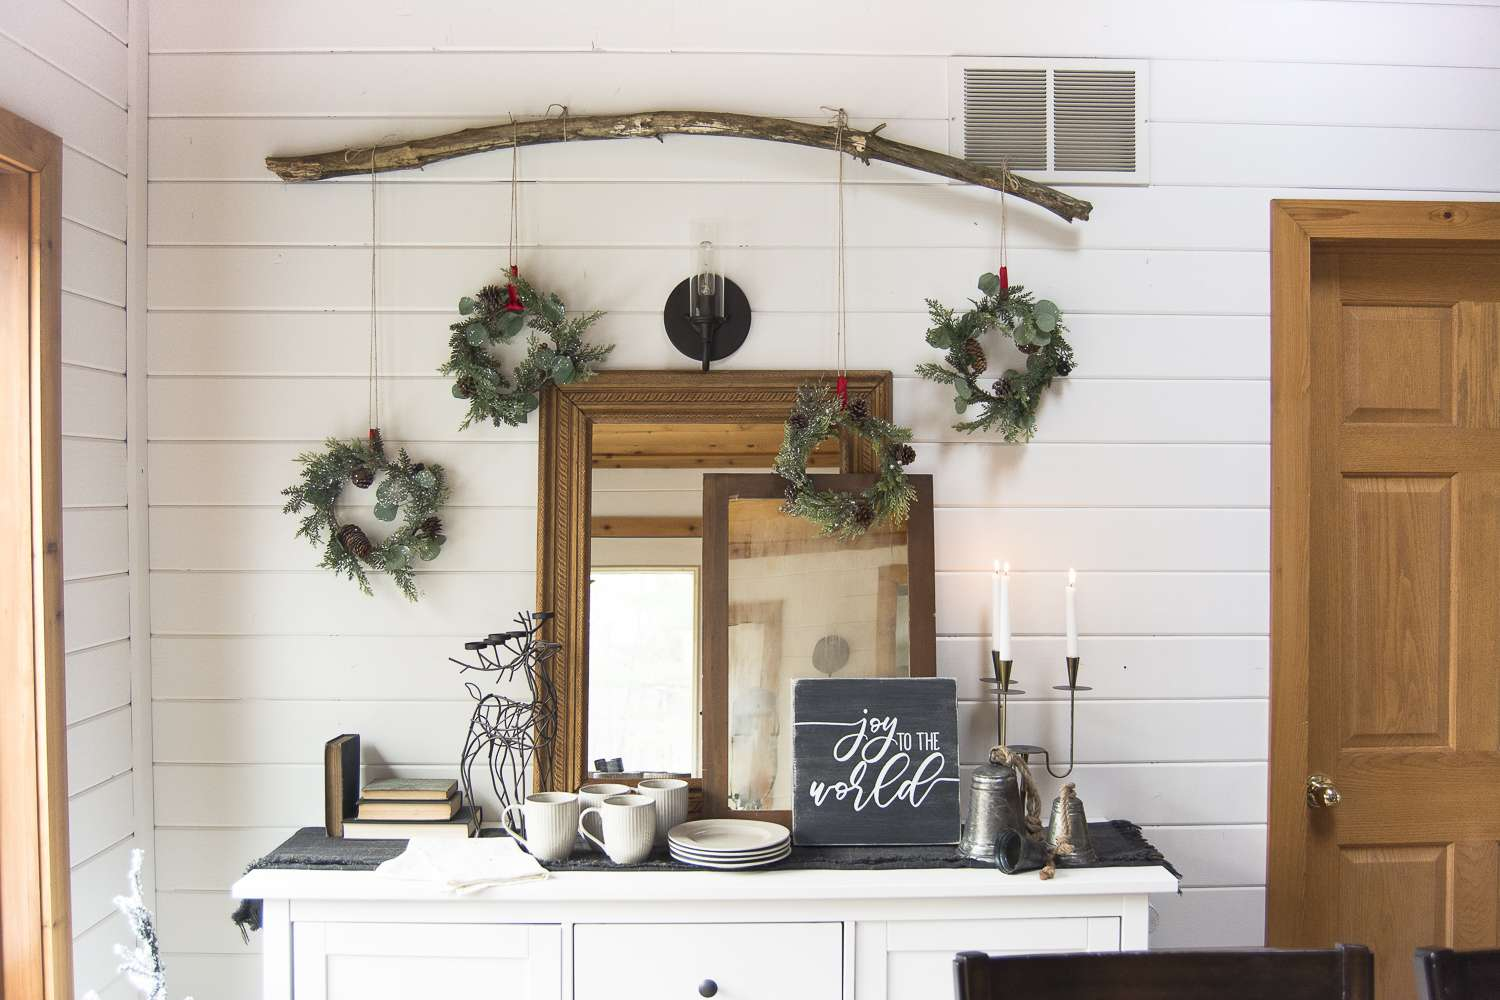 Vintage Christmas decorations are a beautiful addition to your Christmas decor. See how I styled my vintage decor alongside a DIY wreath wall! #vintagechristmasdecorations #christmasdecor #christmaswreath